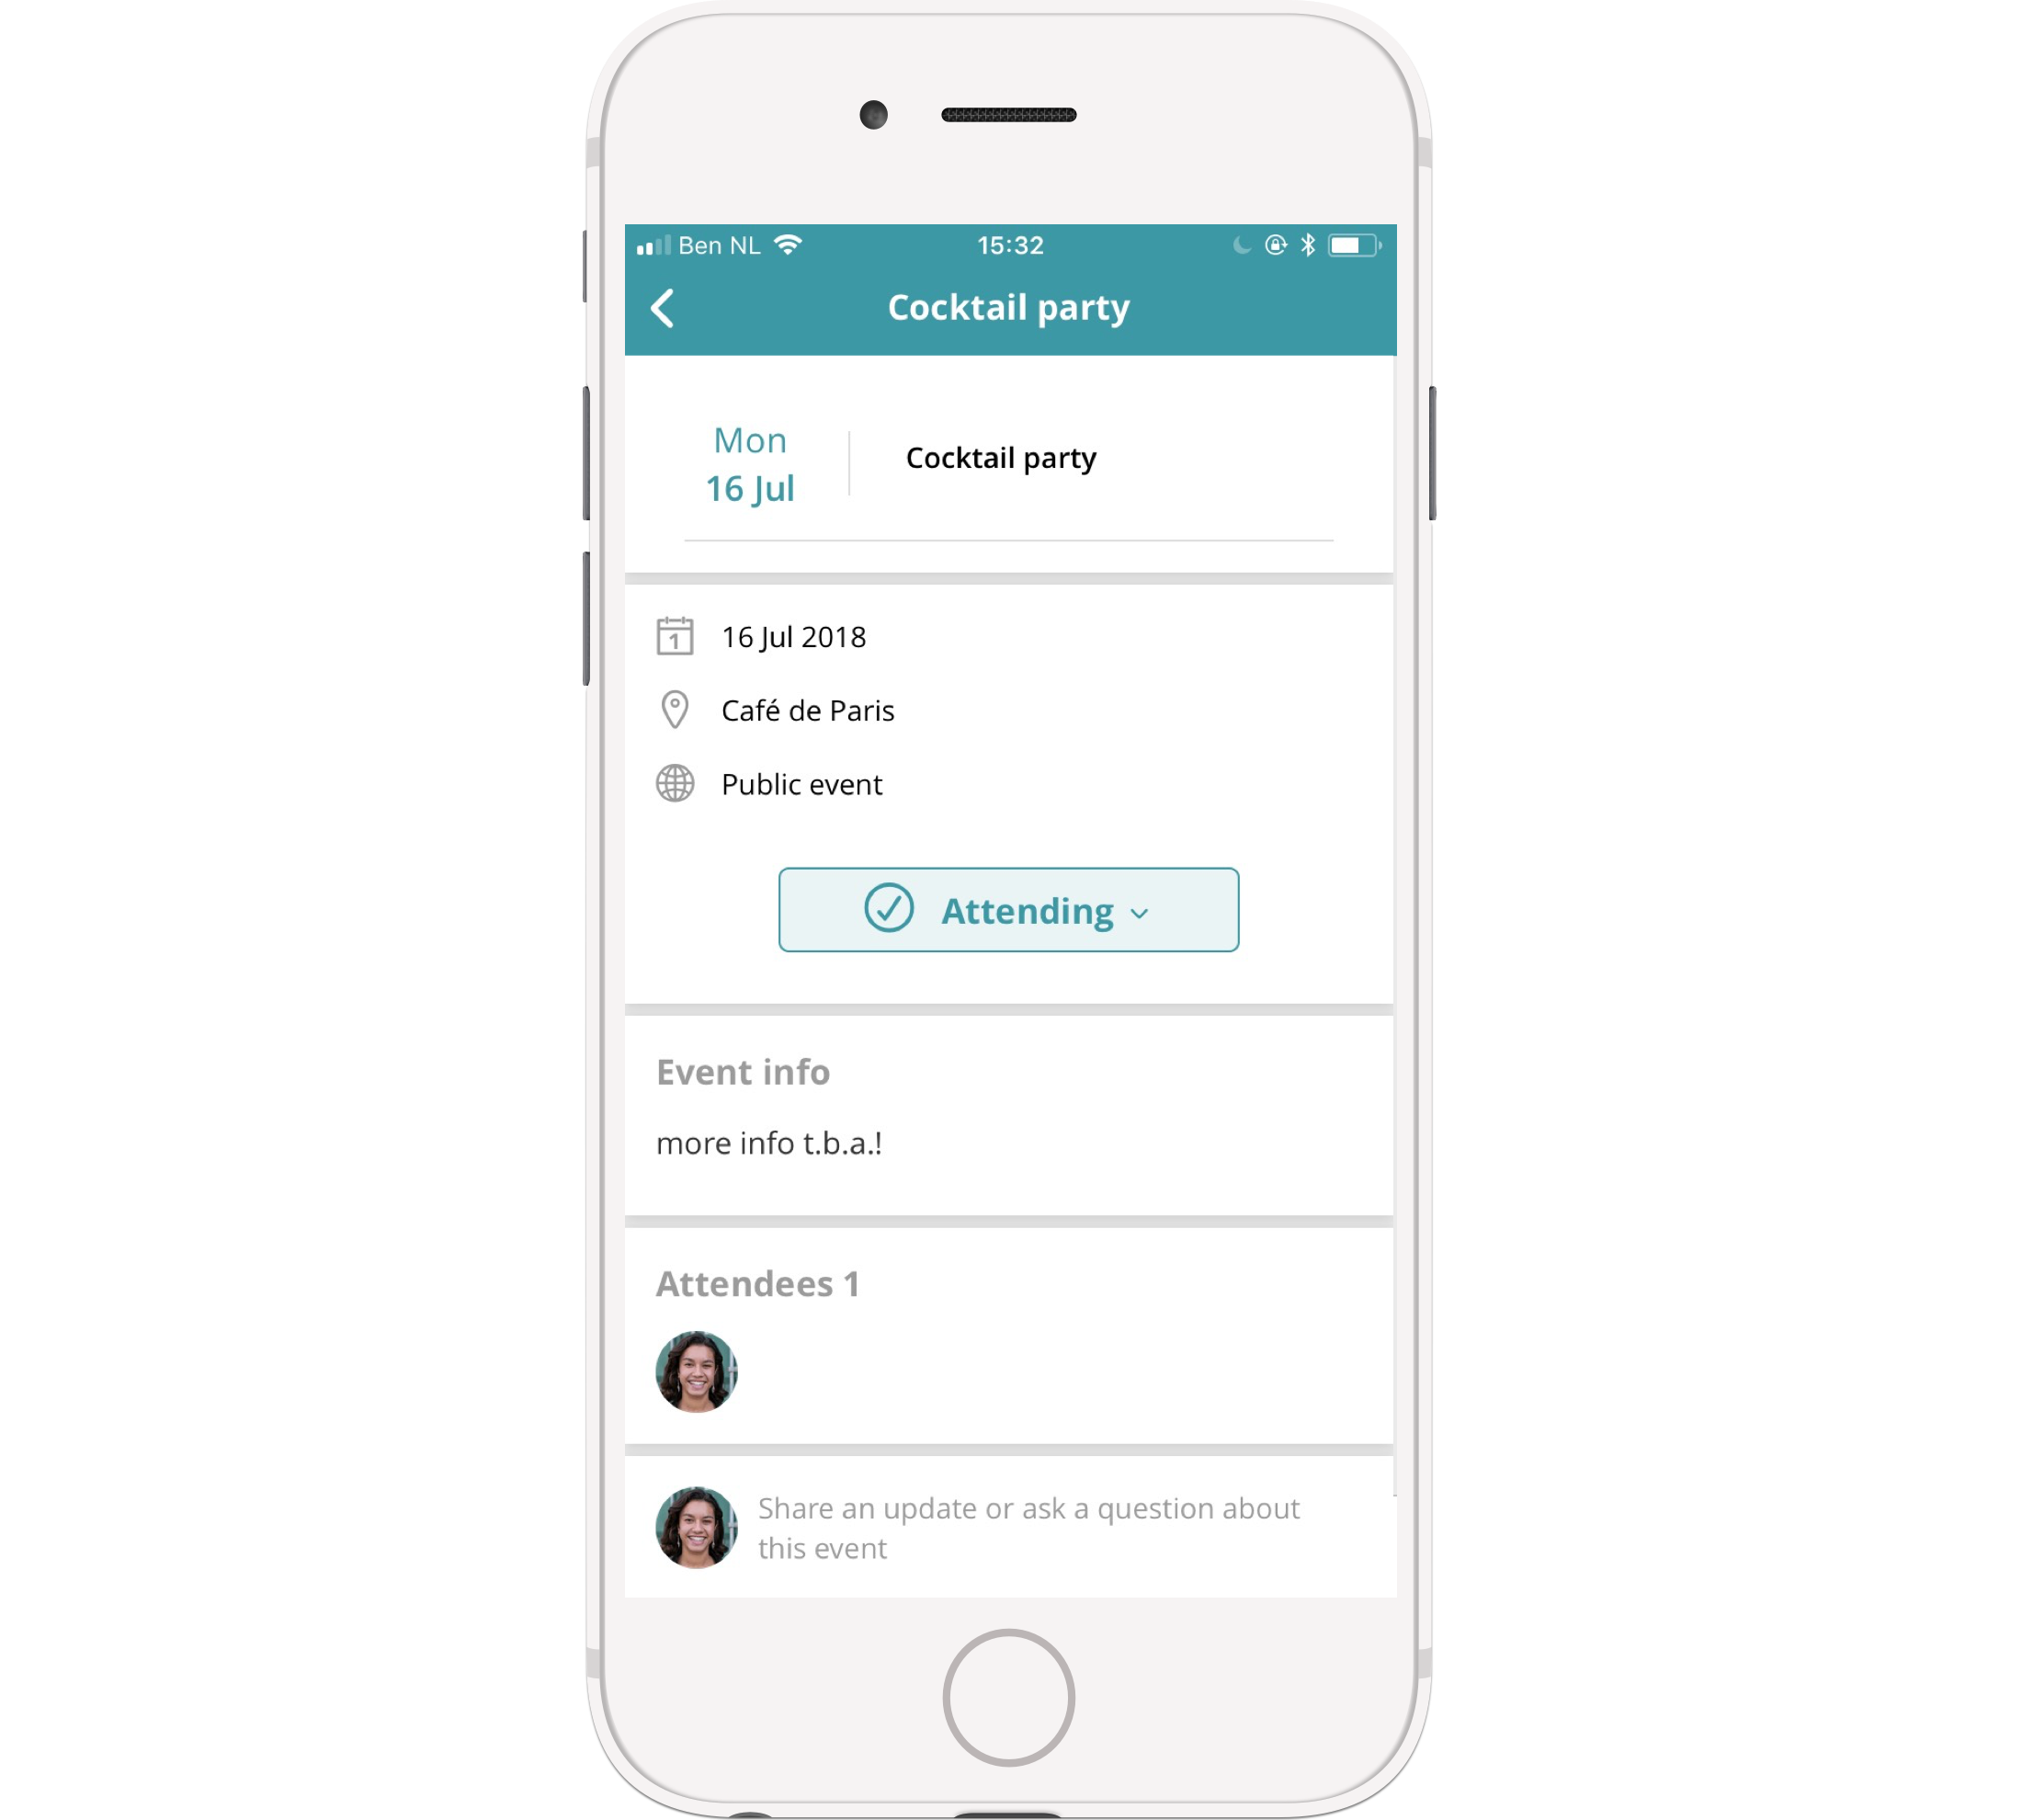 Check your events on the go and let colleagues know if you'll be attending.